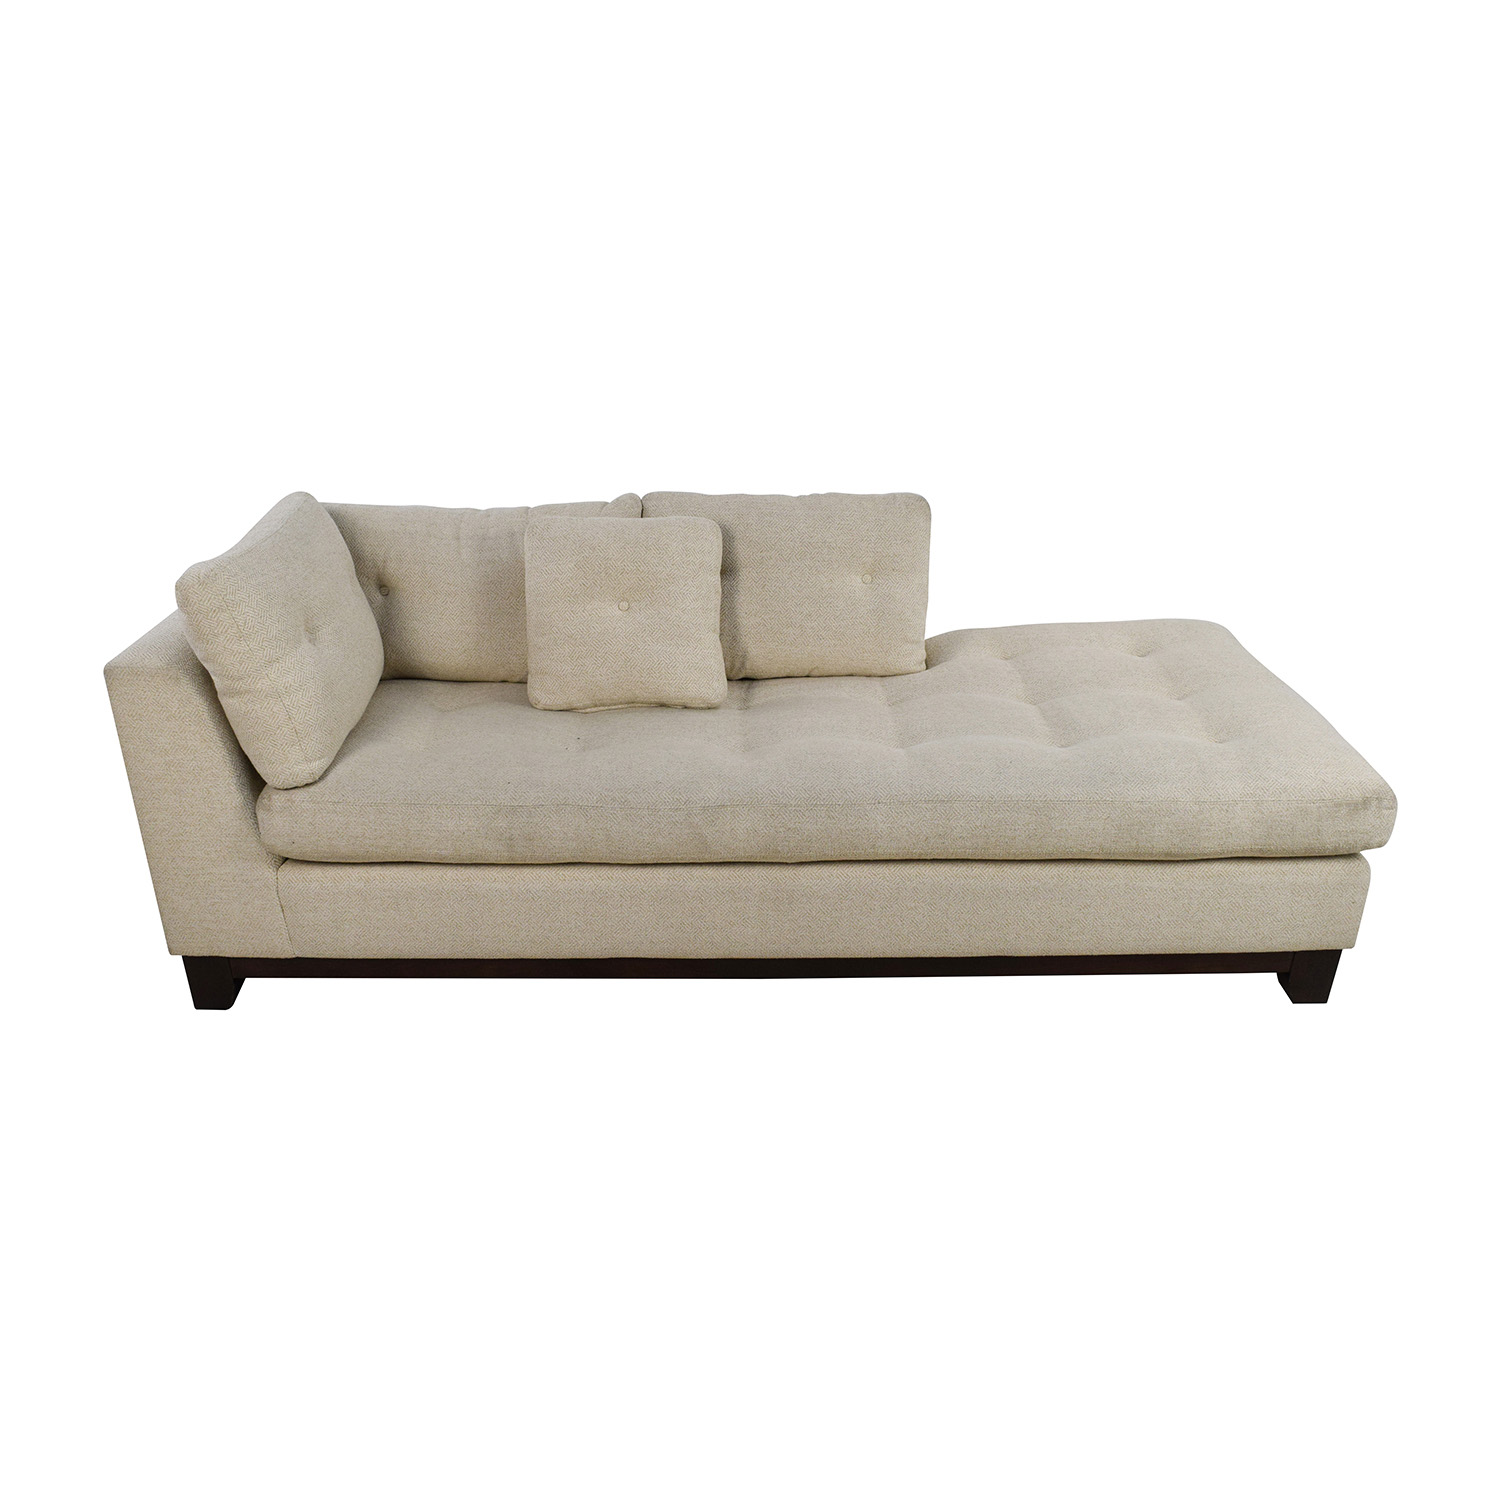 Sofa com chaise chaise lounges ikea thesofa Ikea lounge sofa